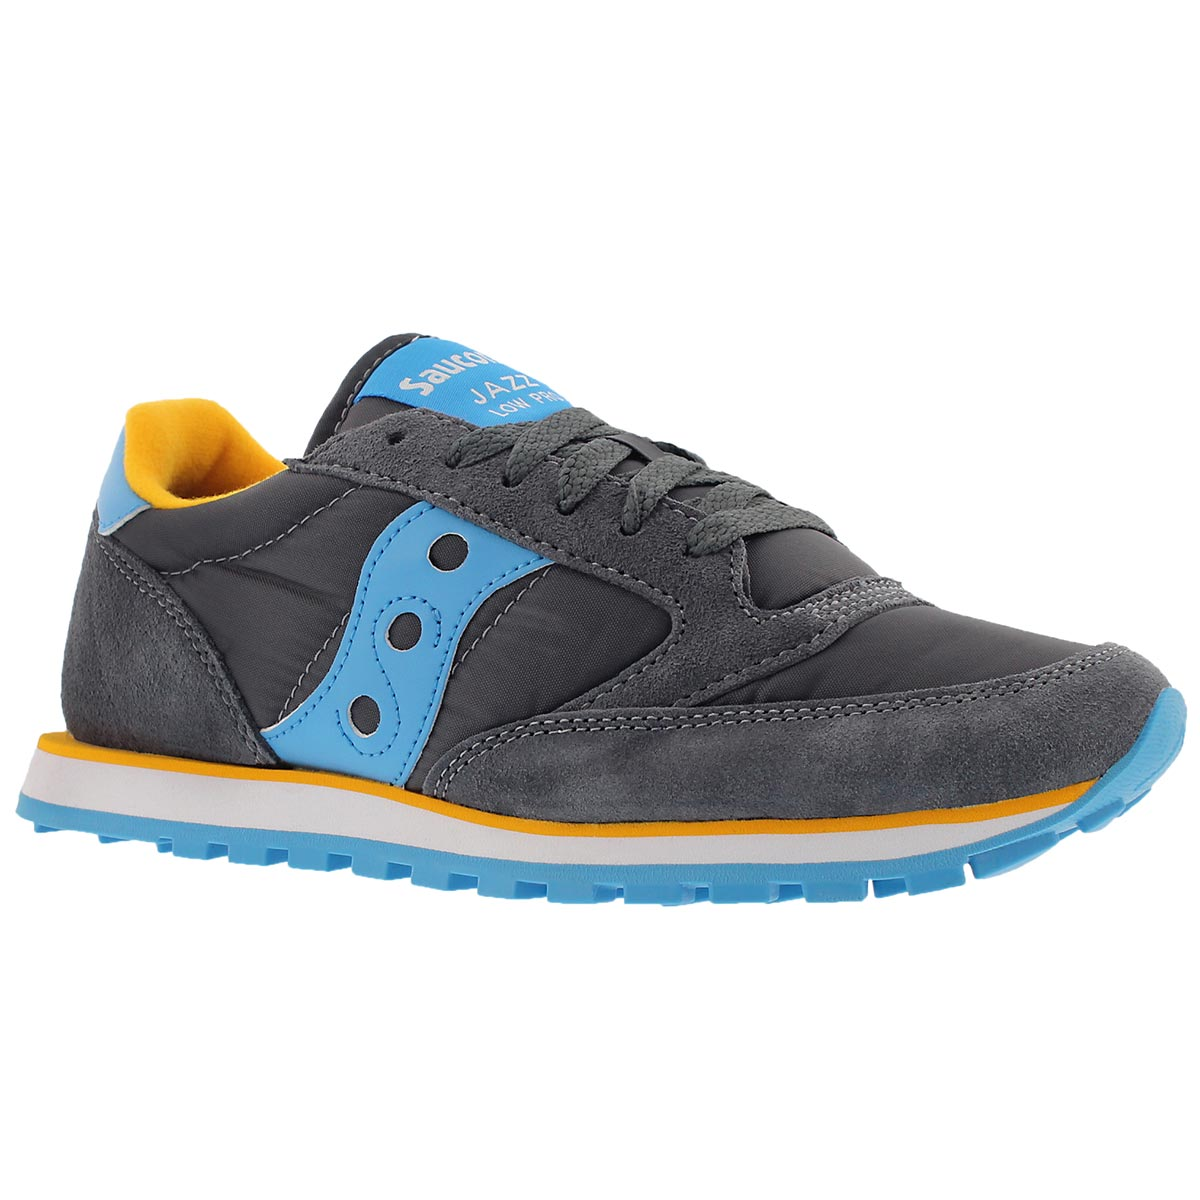 Women's JAZZ LOW PRO charcoal lace up sneakers